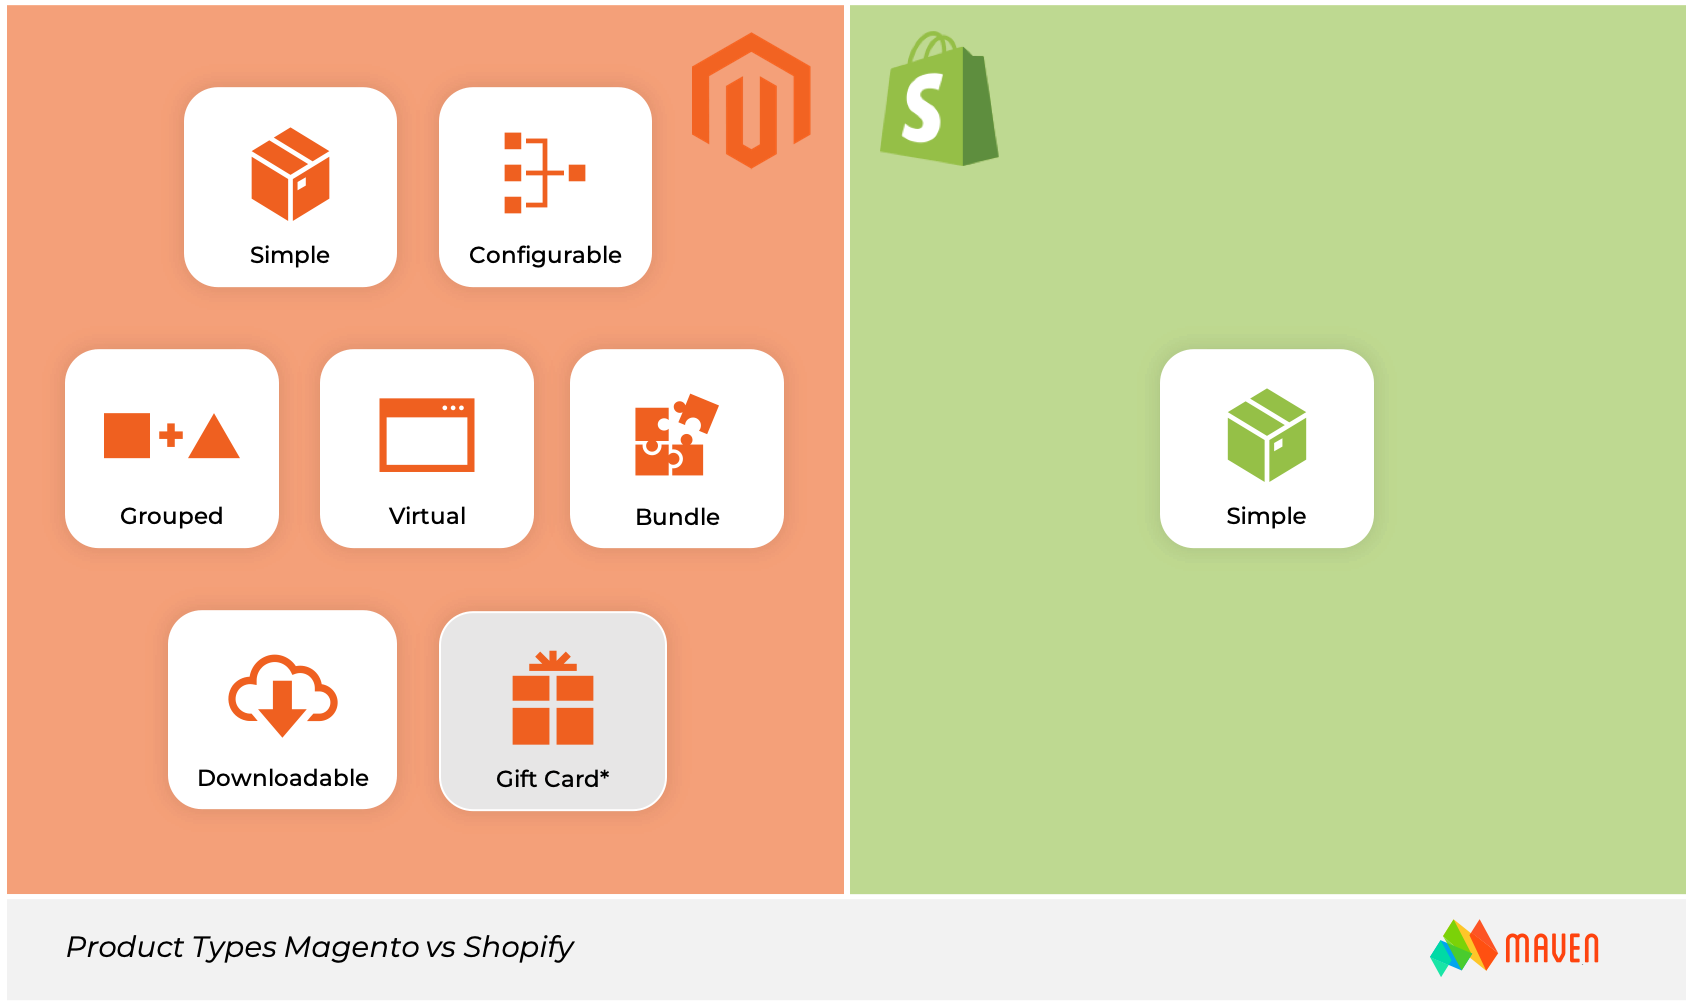 magento or shopify product types